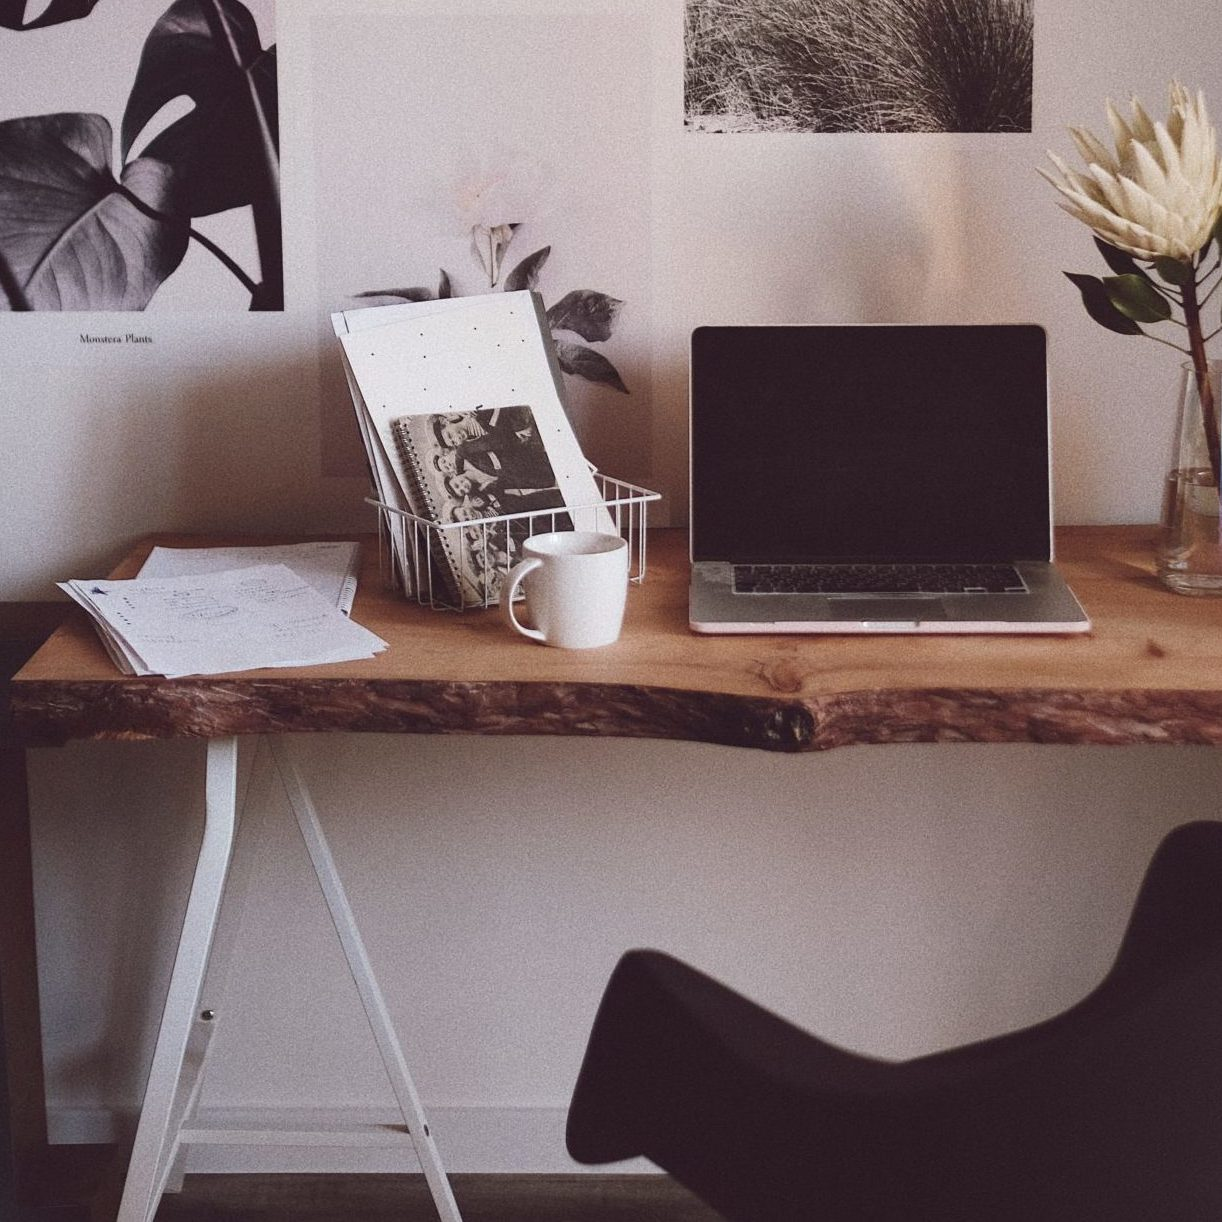 design-of-workplace-in-living-room-4494459